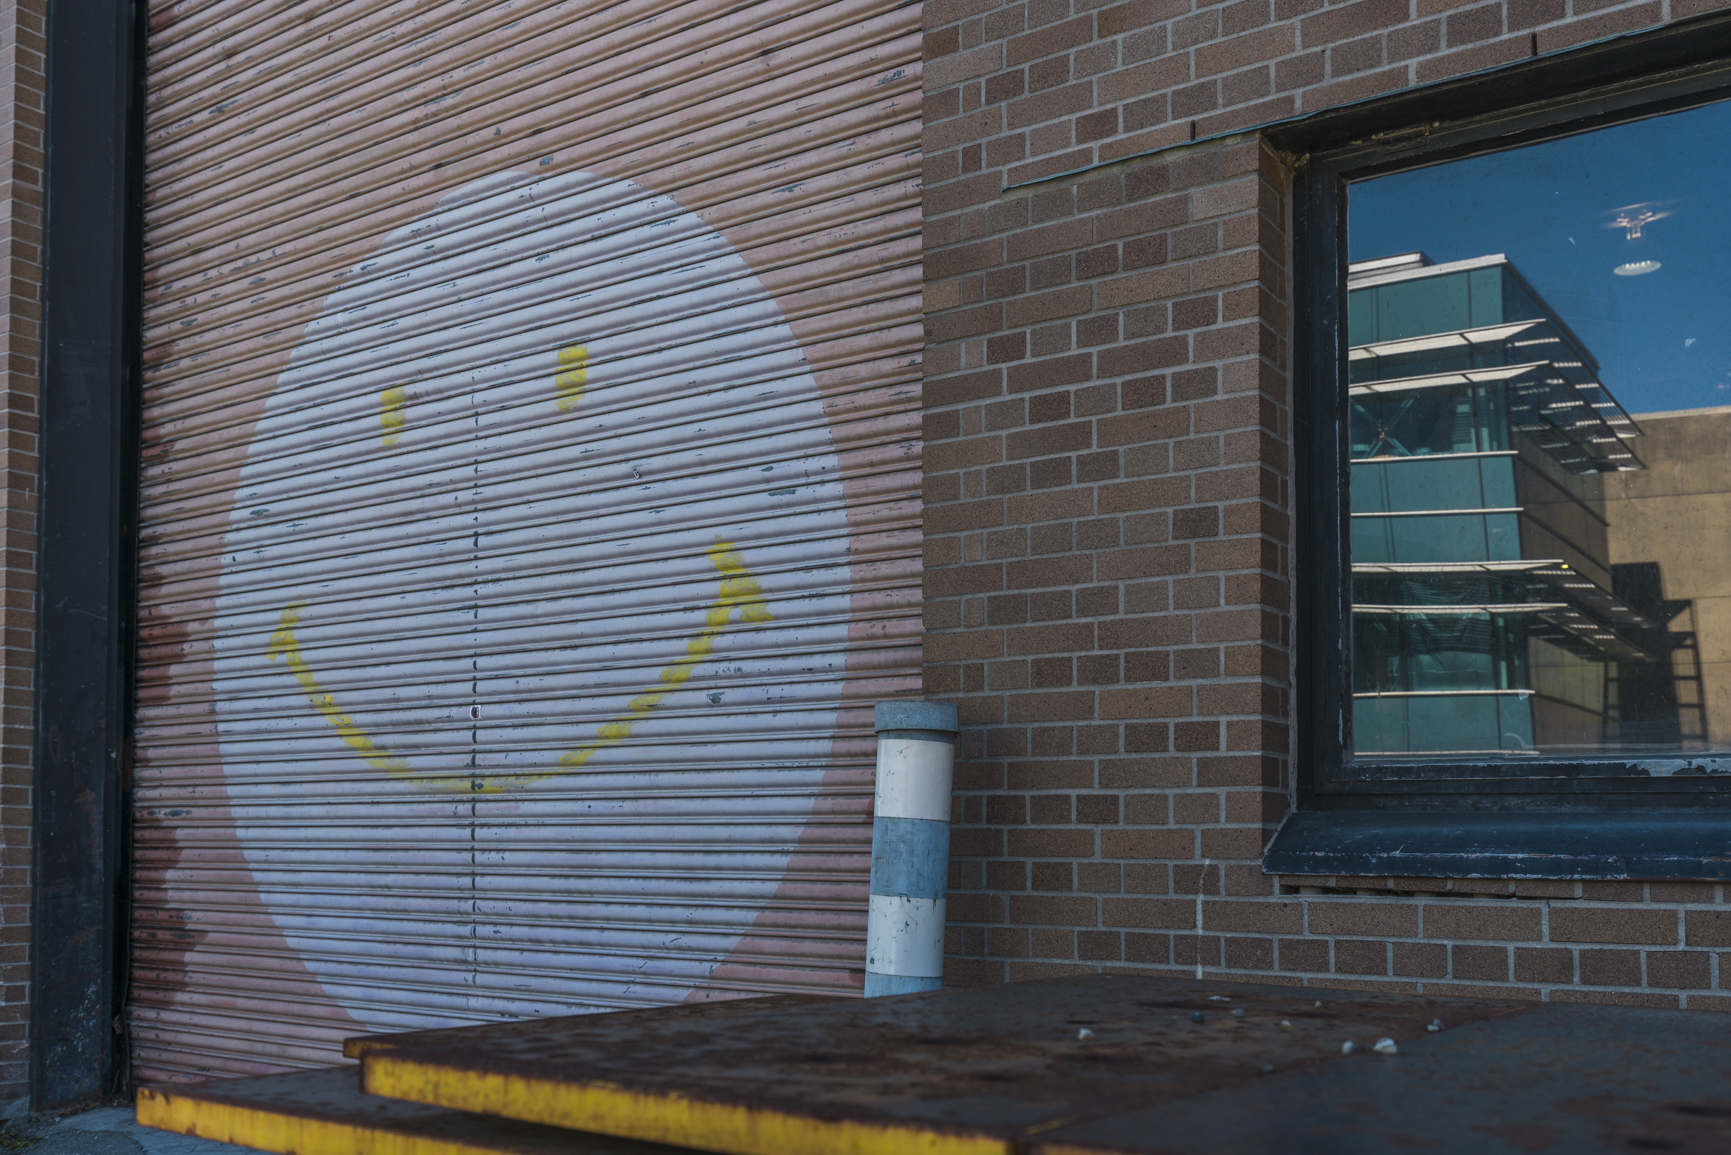 A smiley face outside of the Beaty Biodiversity building.